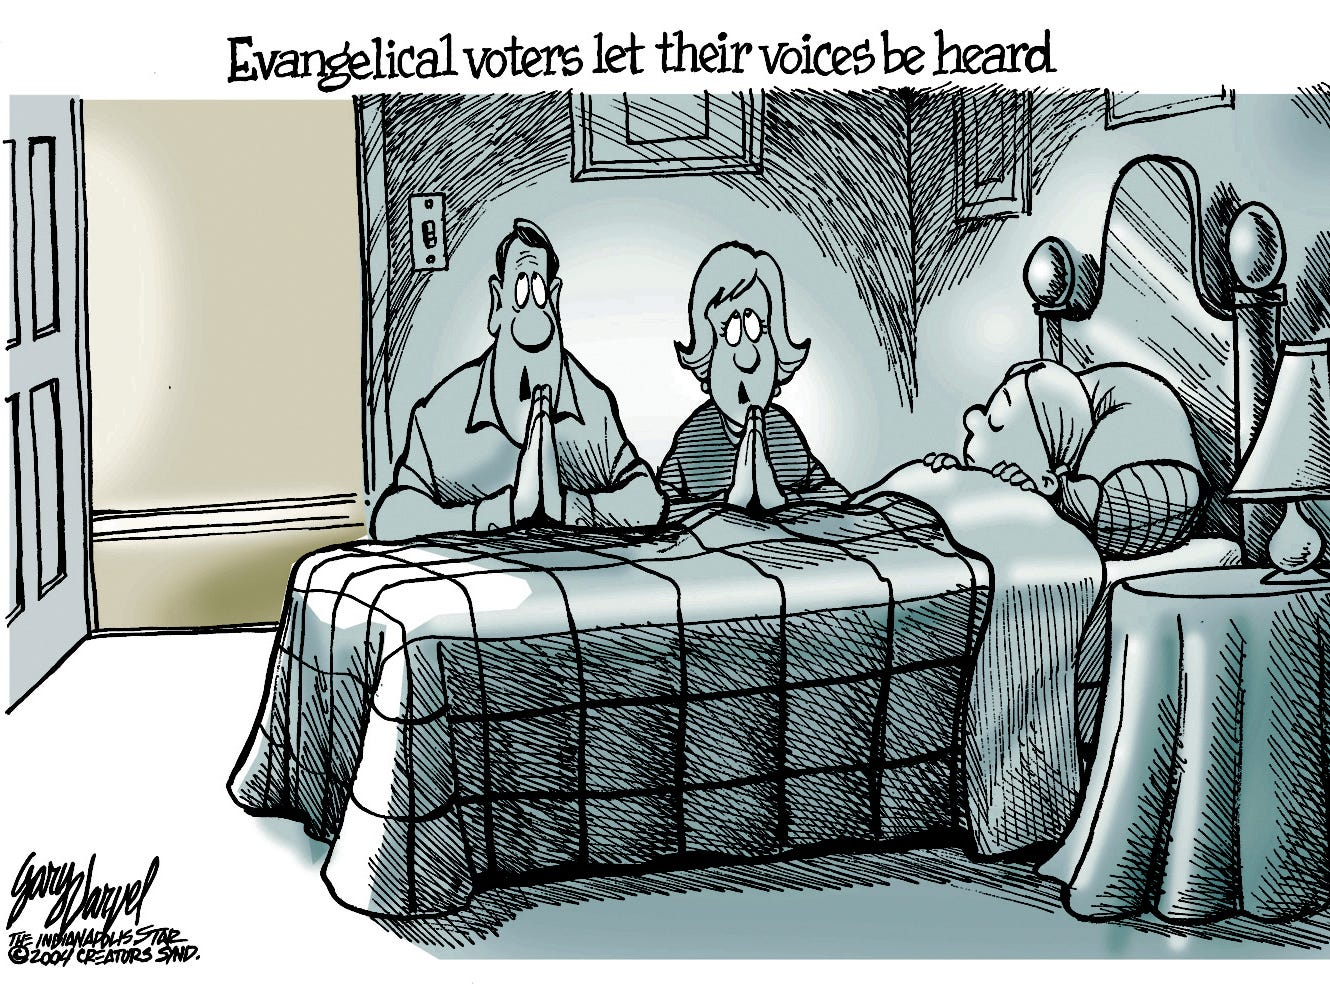 Evangelical voters vote and then pray.